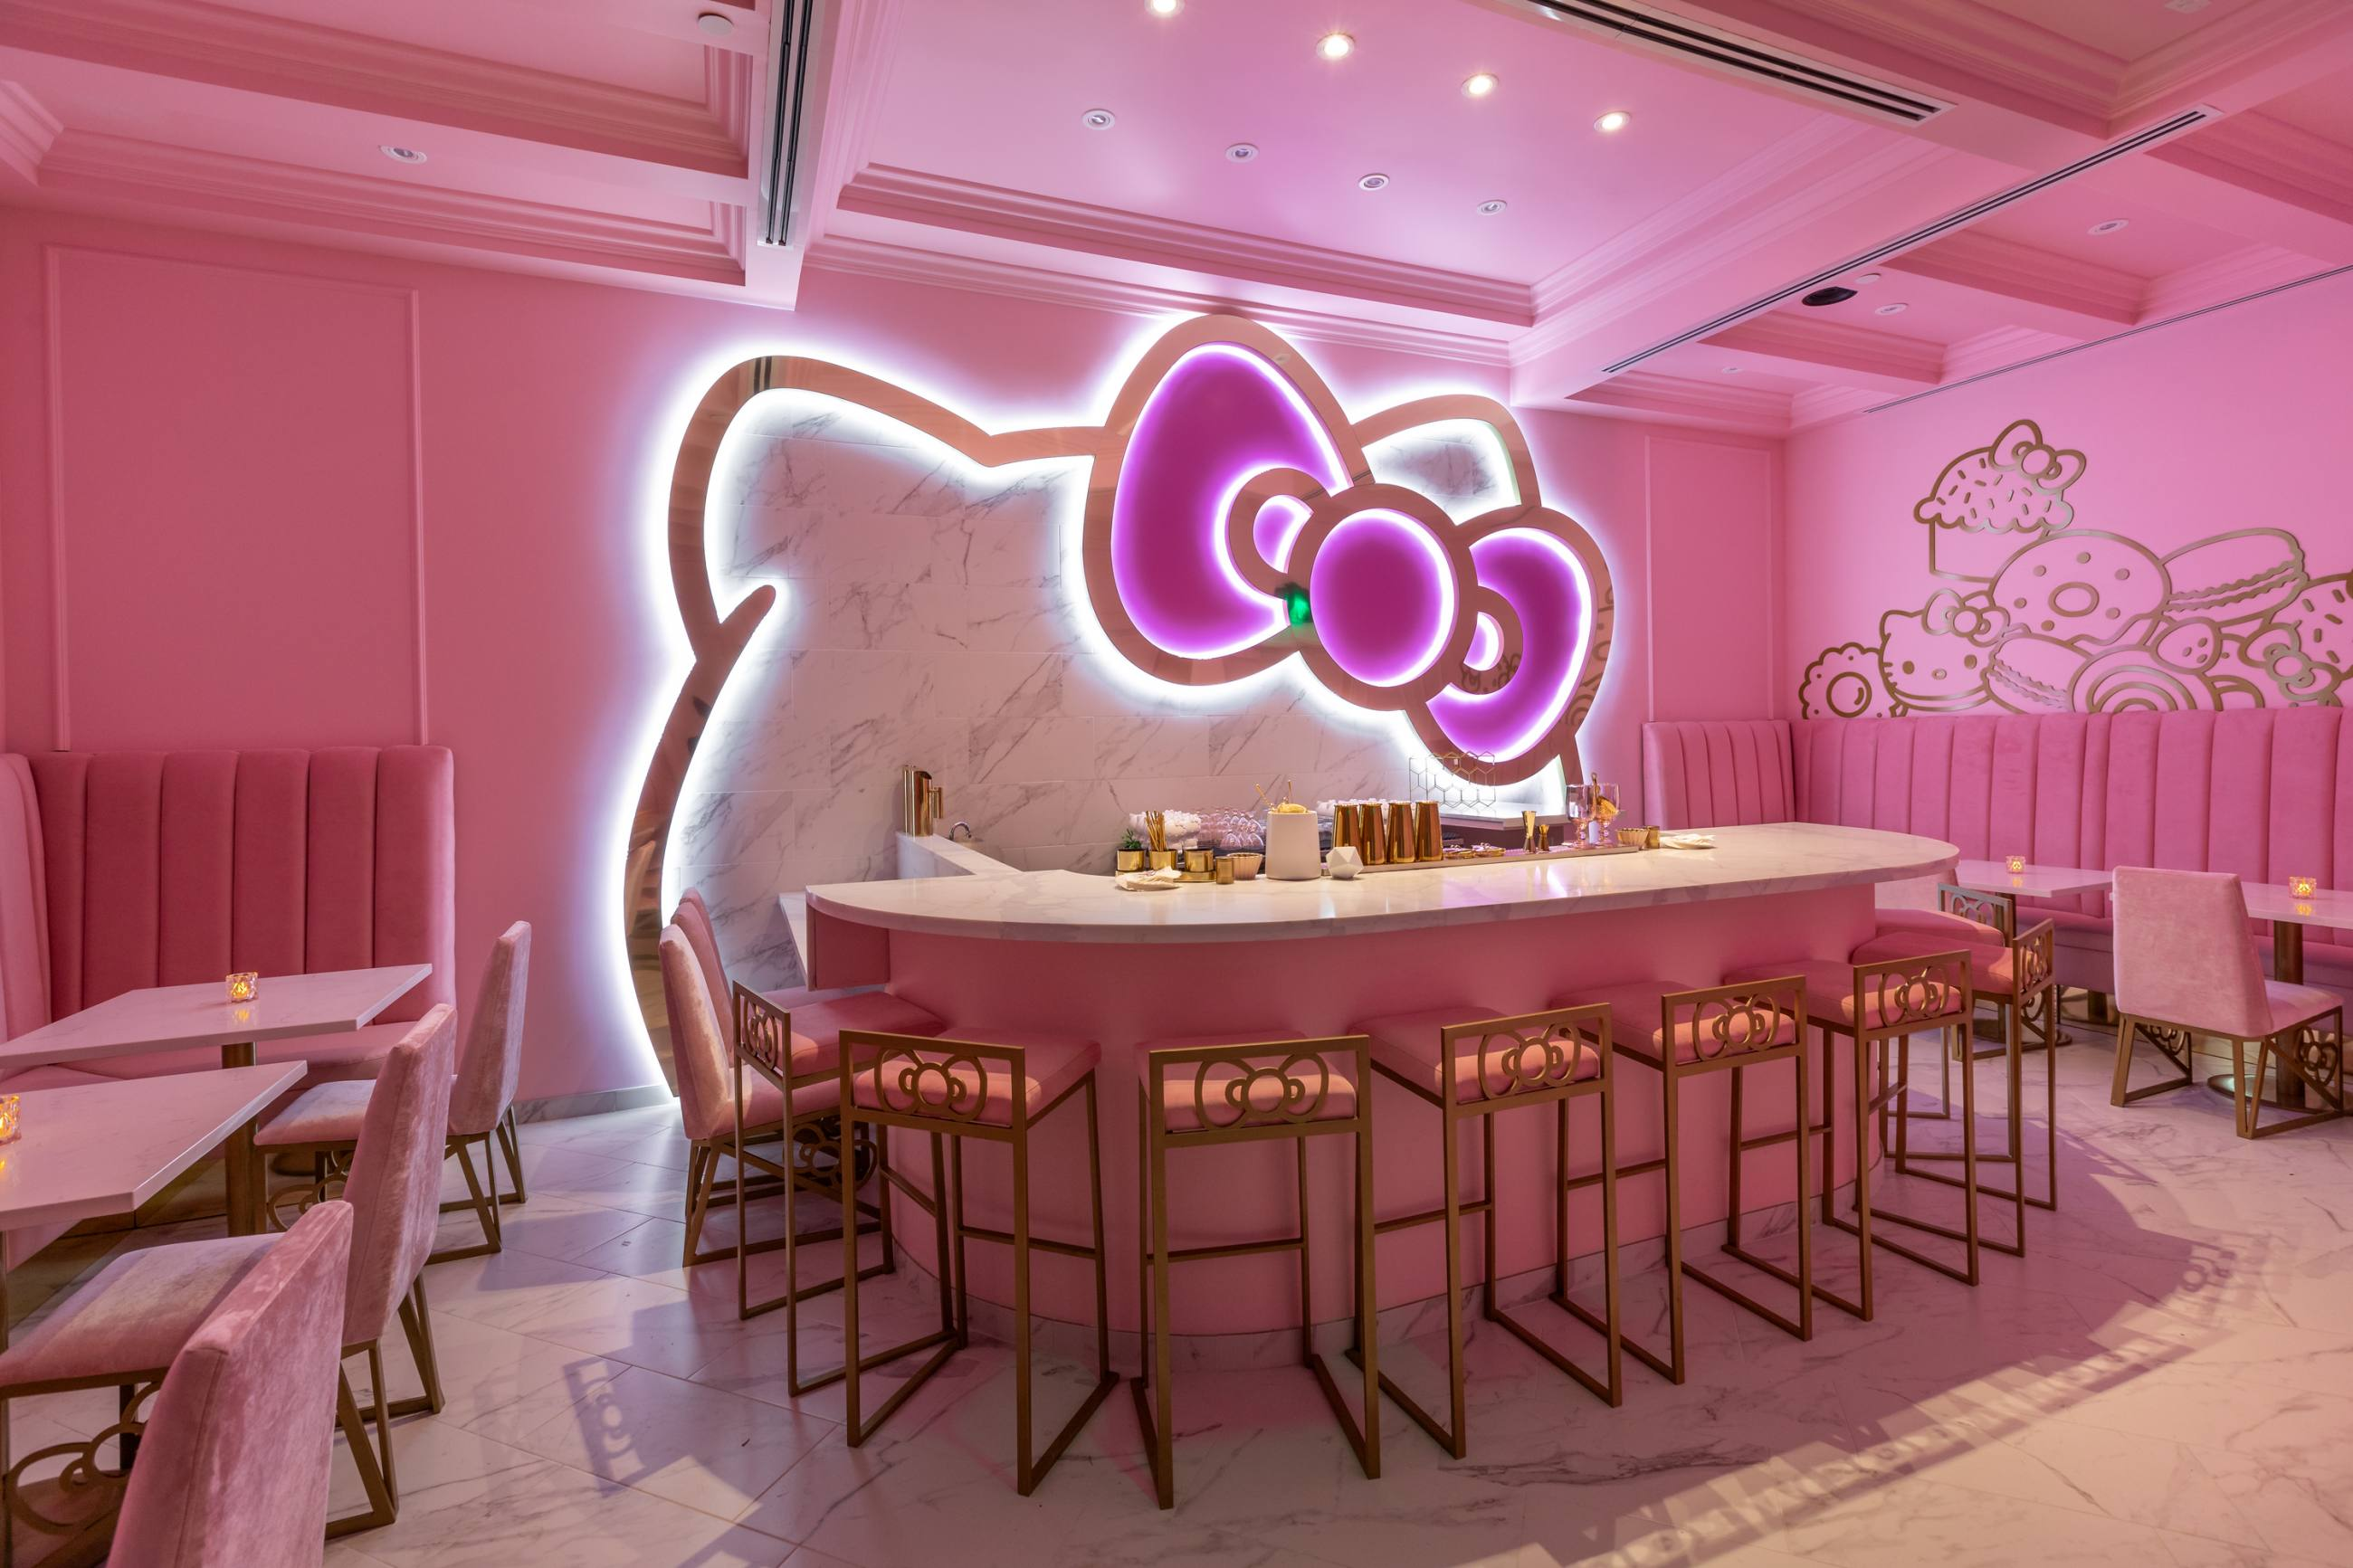 The Bow Room at Hello Kitty Grand Cafe in Irvine